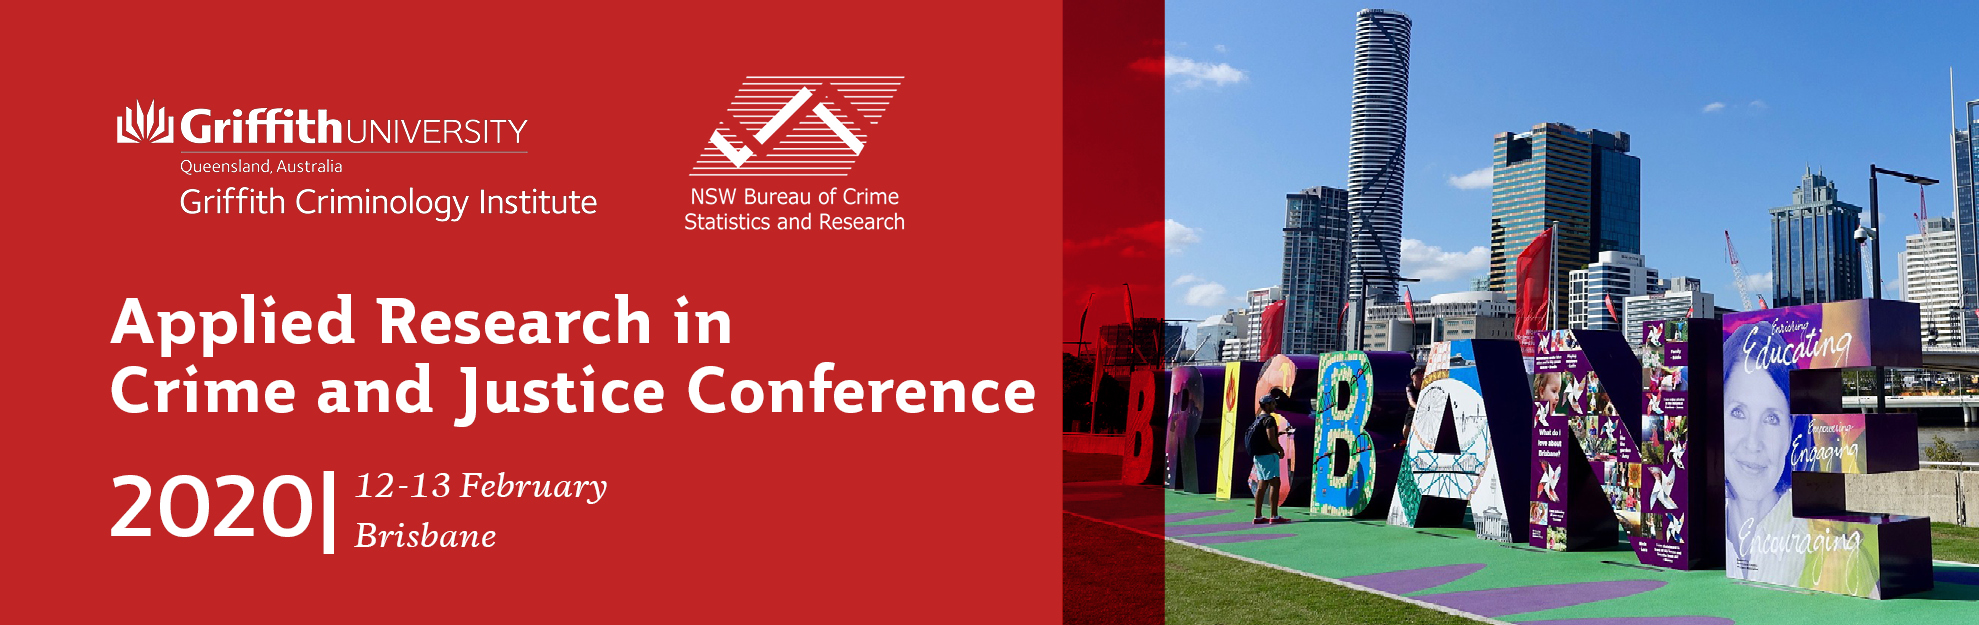 2020 Applied Research in Crime and Justice Conference